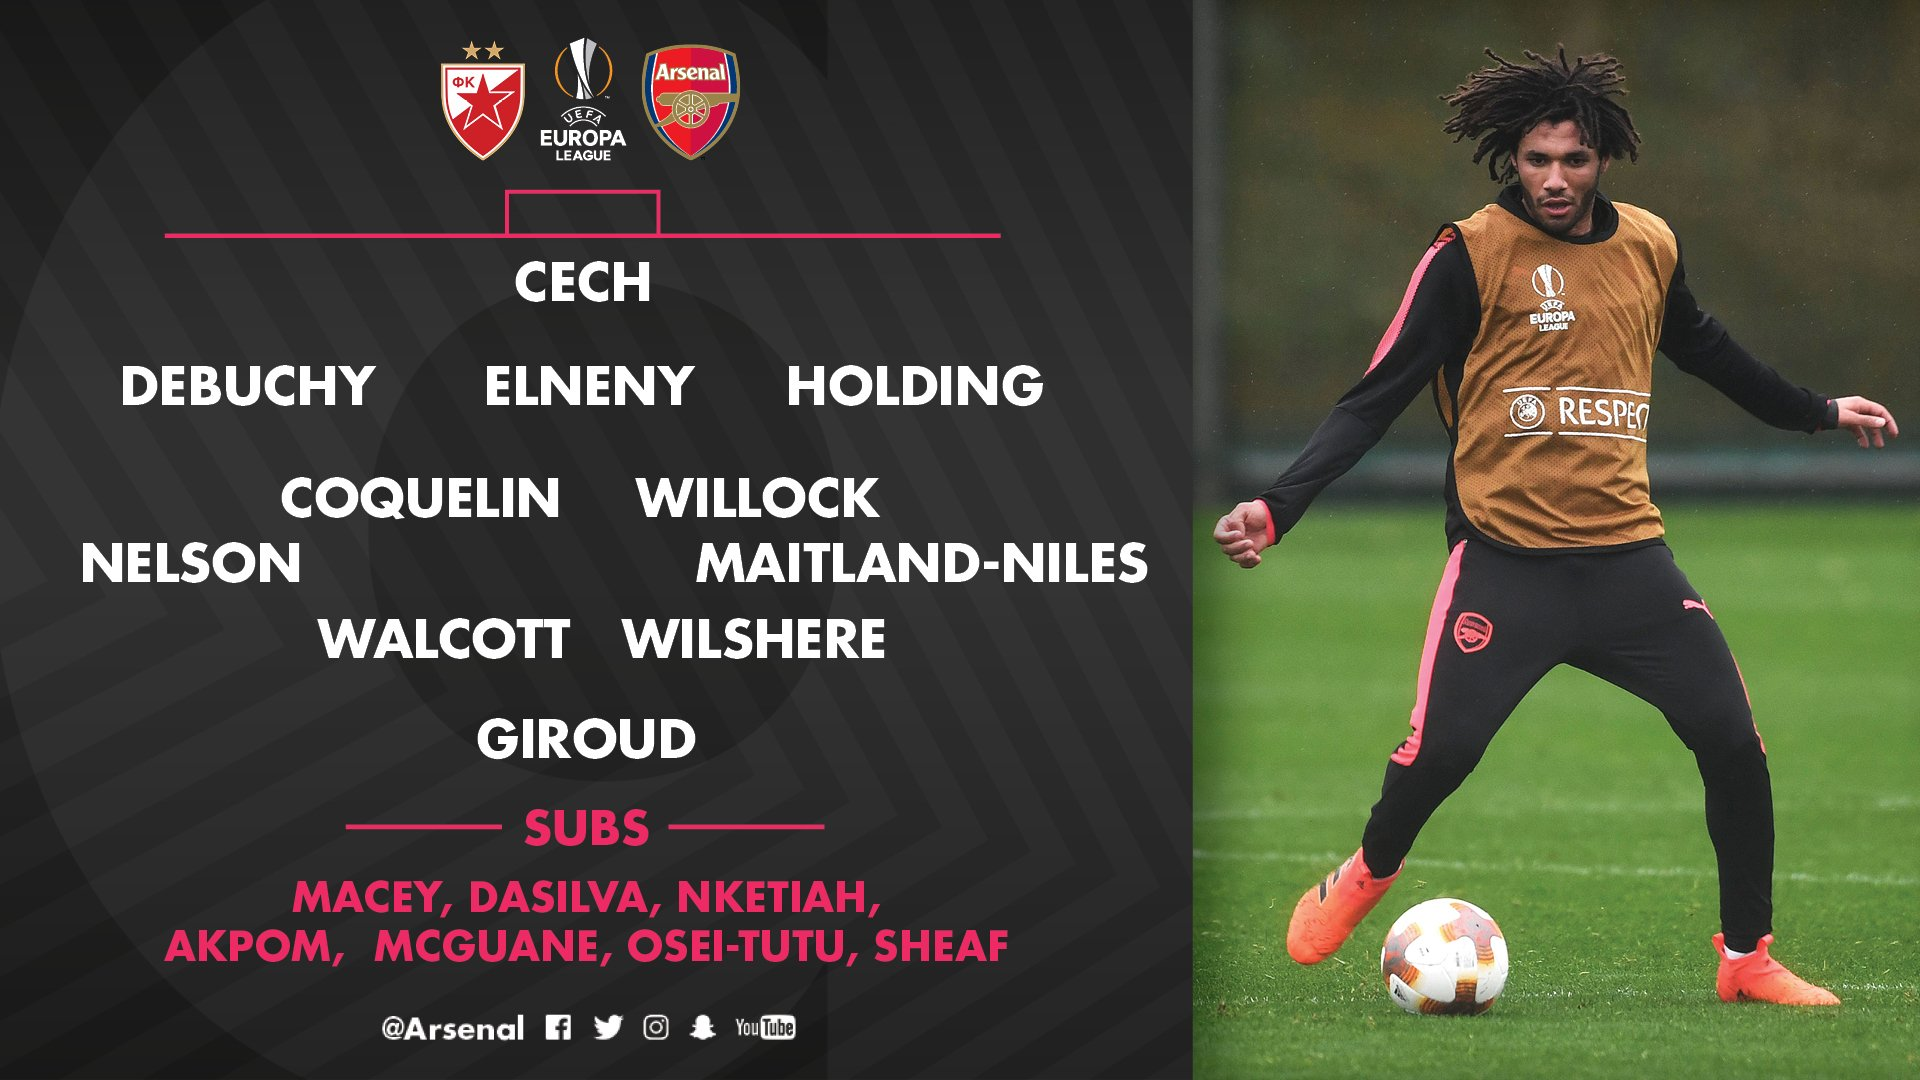 Here it is - our team for #RSBvAFC �� https://t.co/PaQpEDB3IM